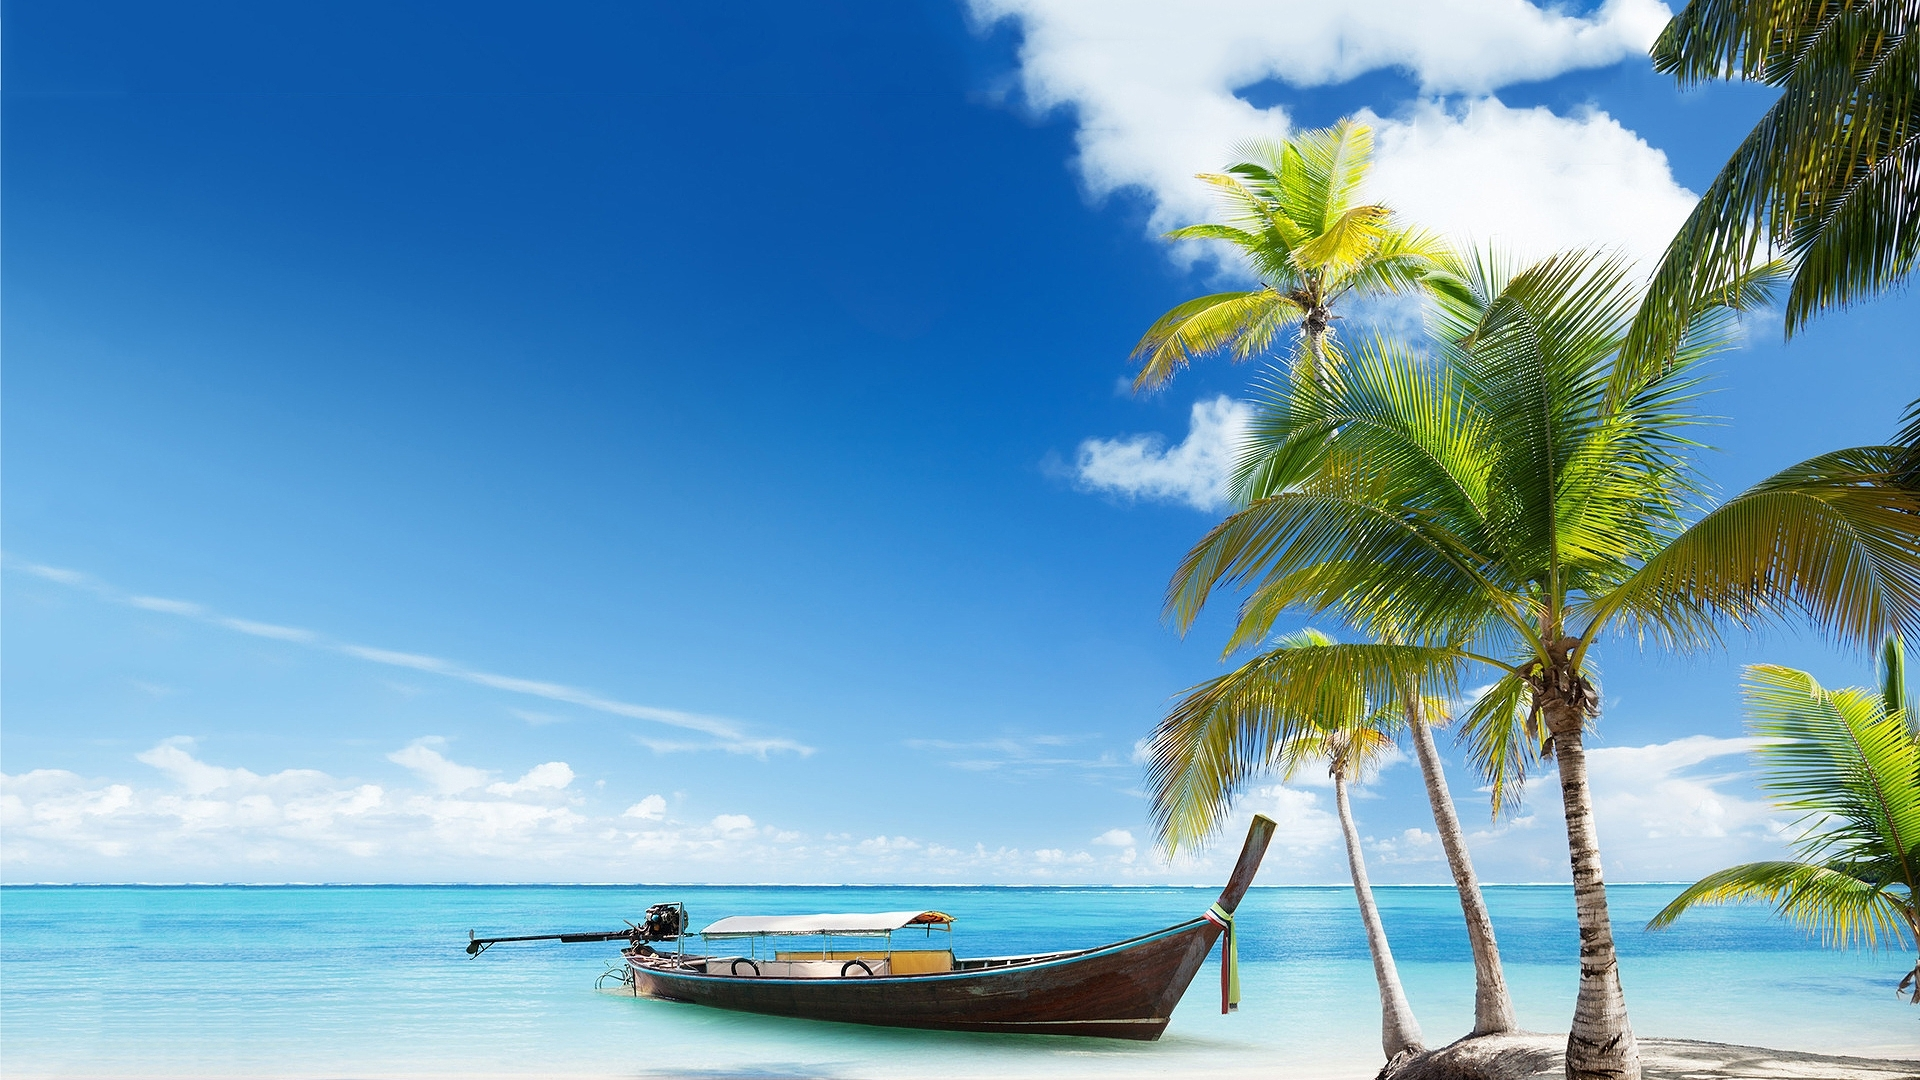 Lonely Boat in Paradise Island Hd Wallpaper List